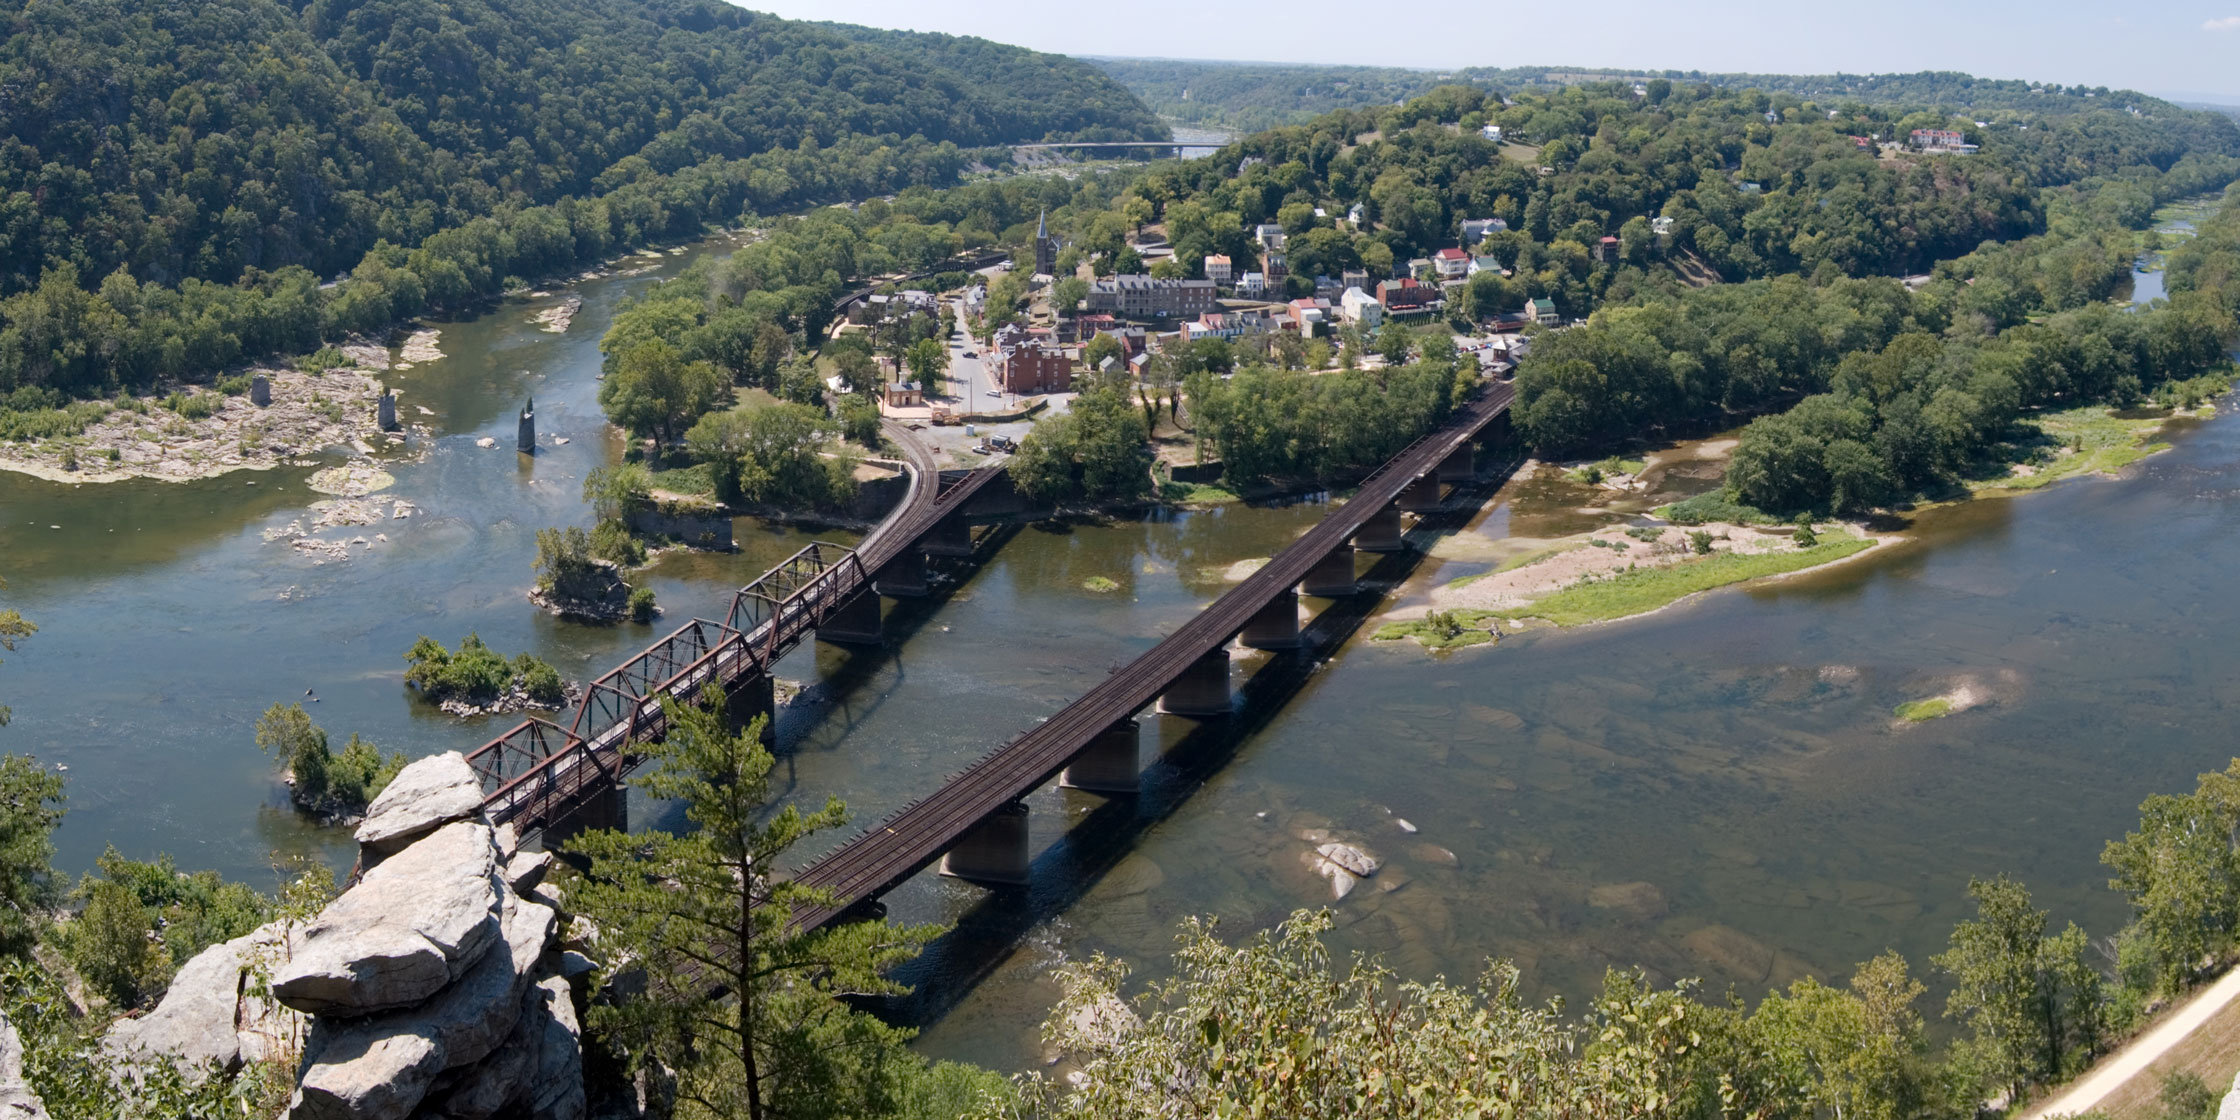 The view of Harpers Ferry from Maryland Heights